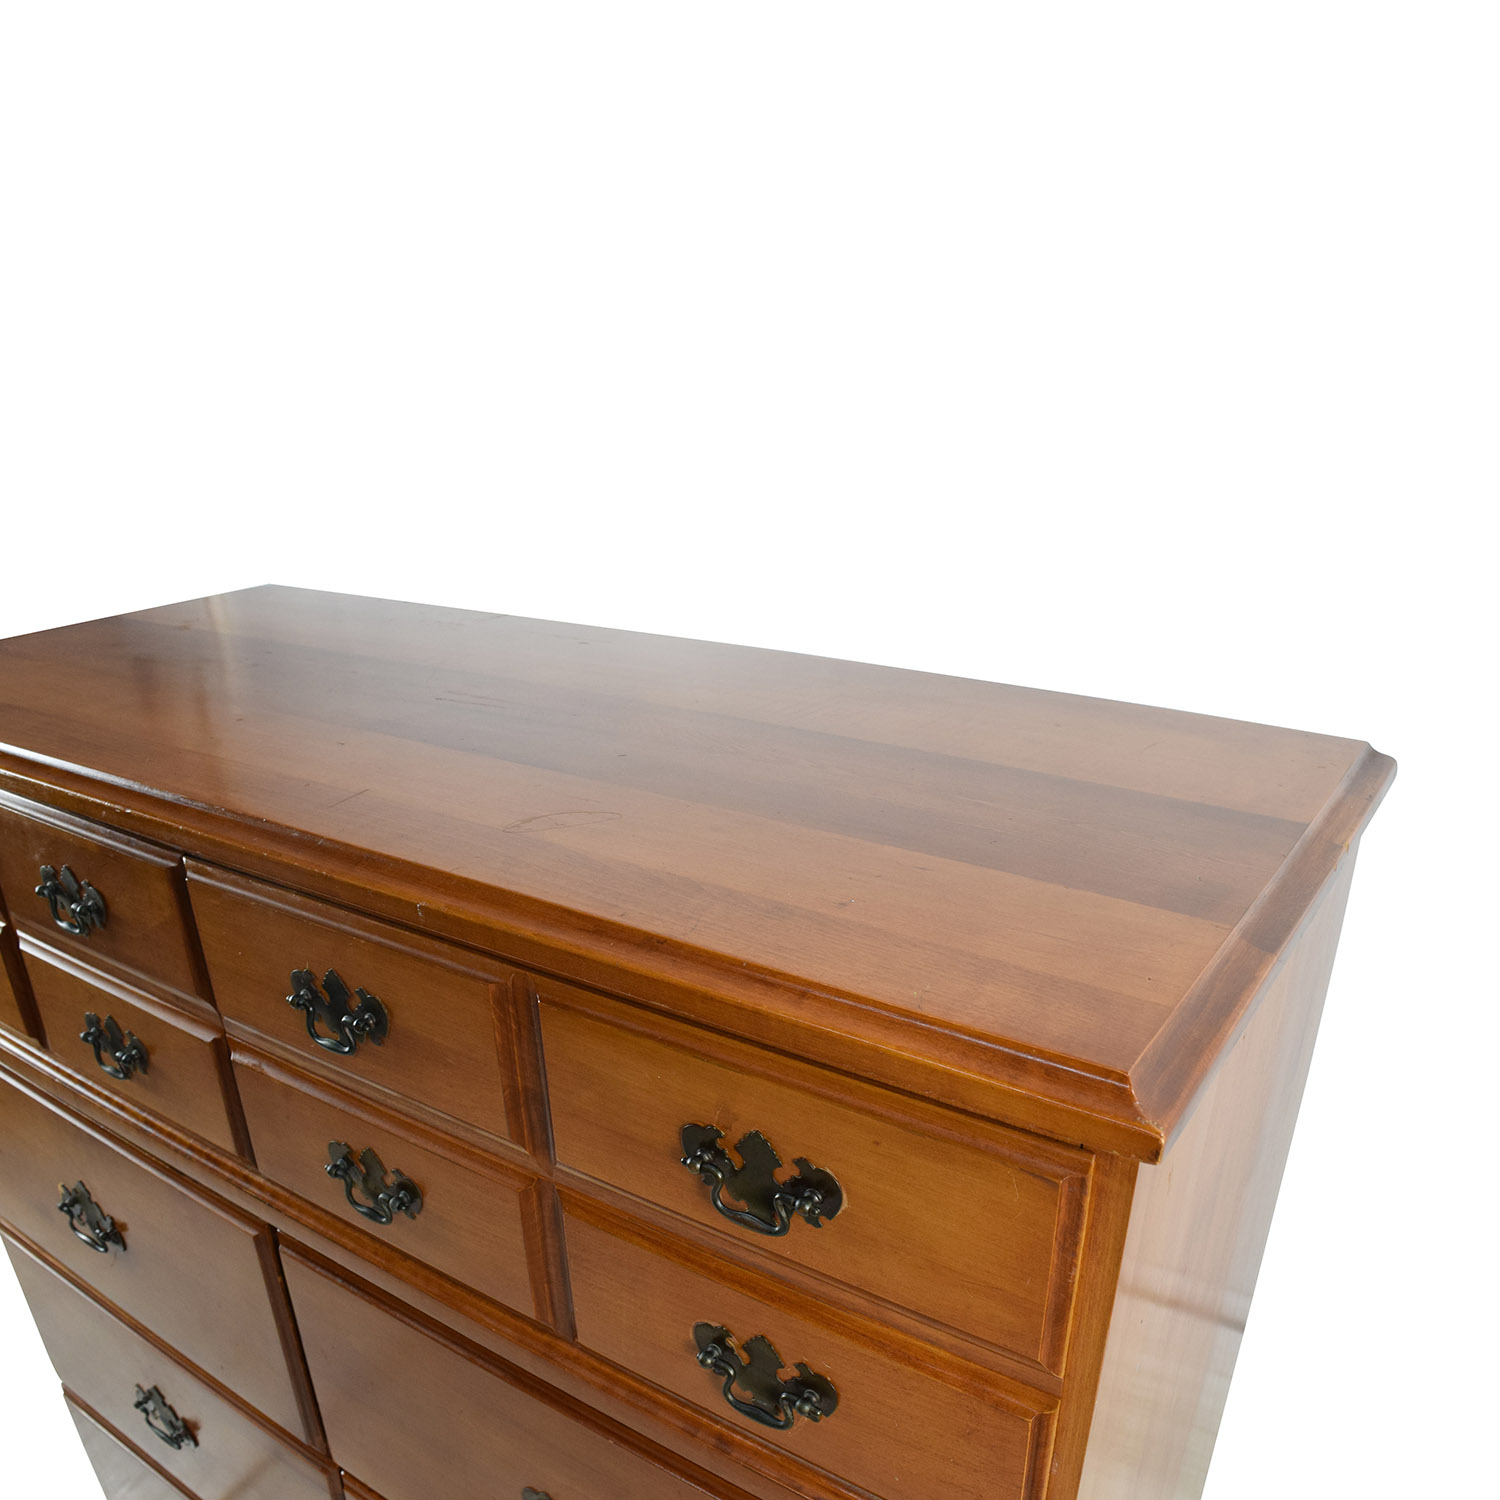 62 Off Antique Wooden Dresser Storage